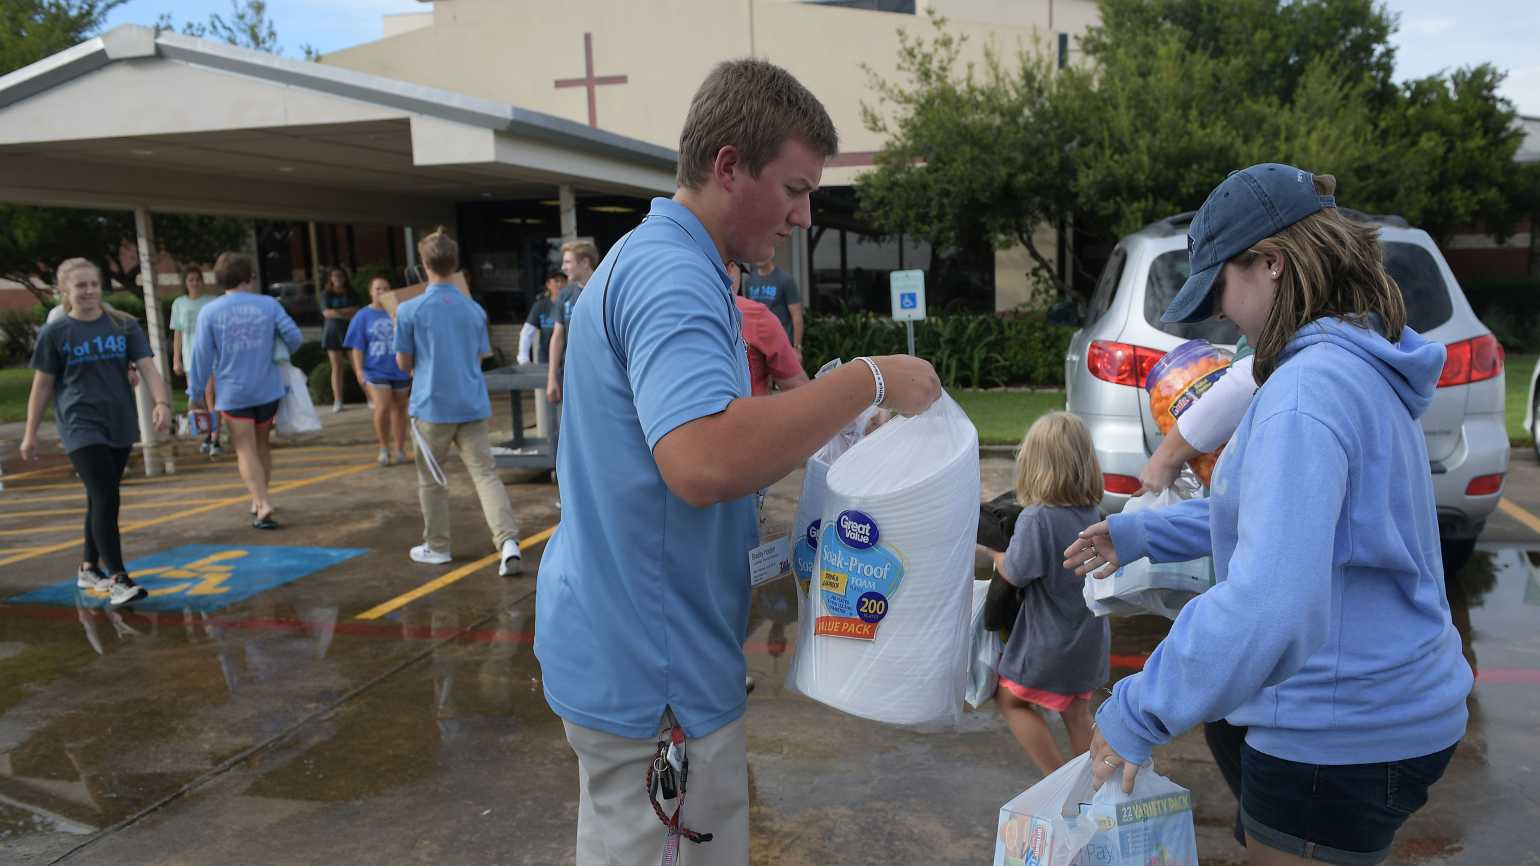 A volunteer receives donated items outside of a shelter for volunteer rescue workers set up at the Fairfield Baptist Church